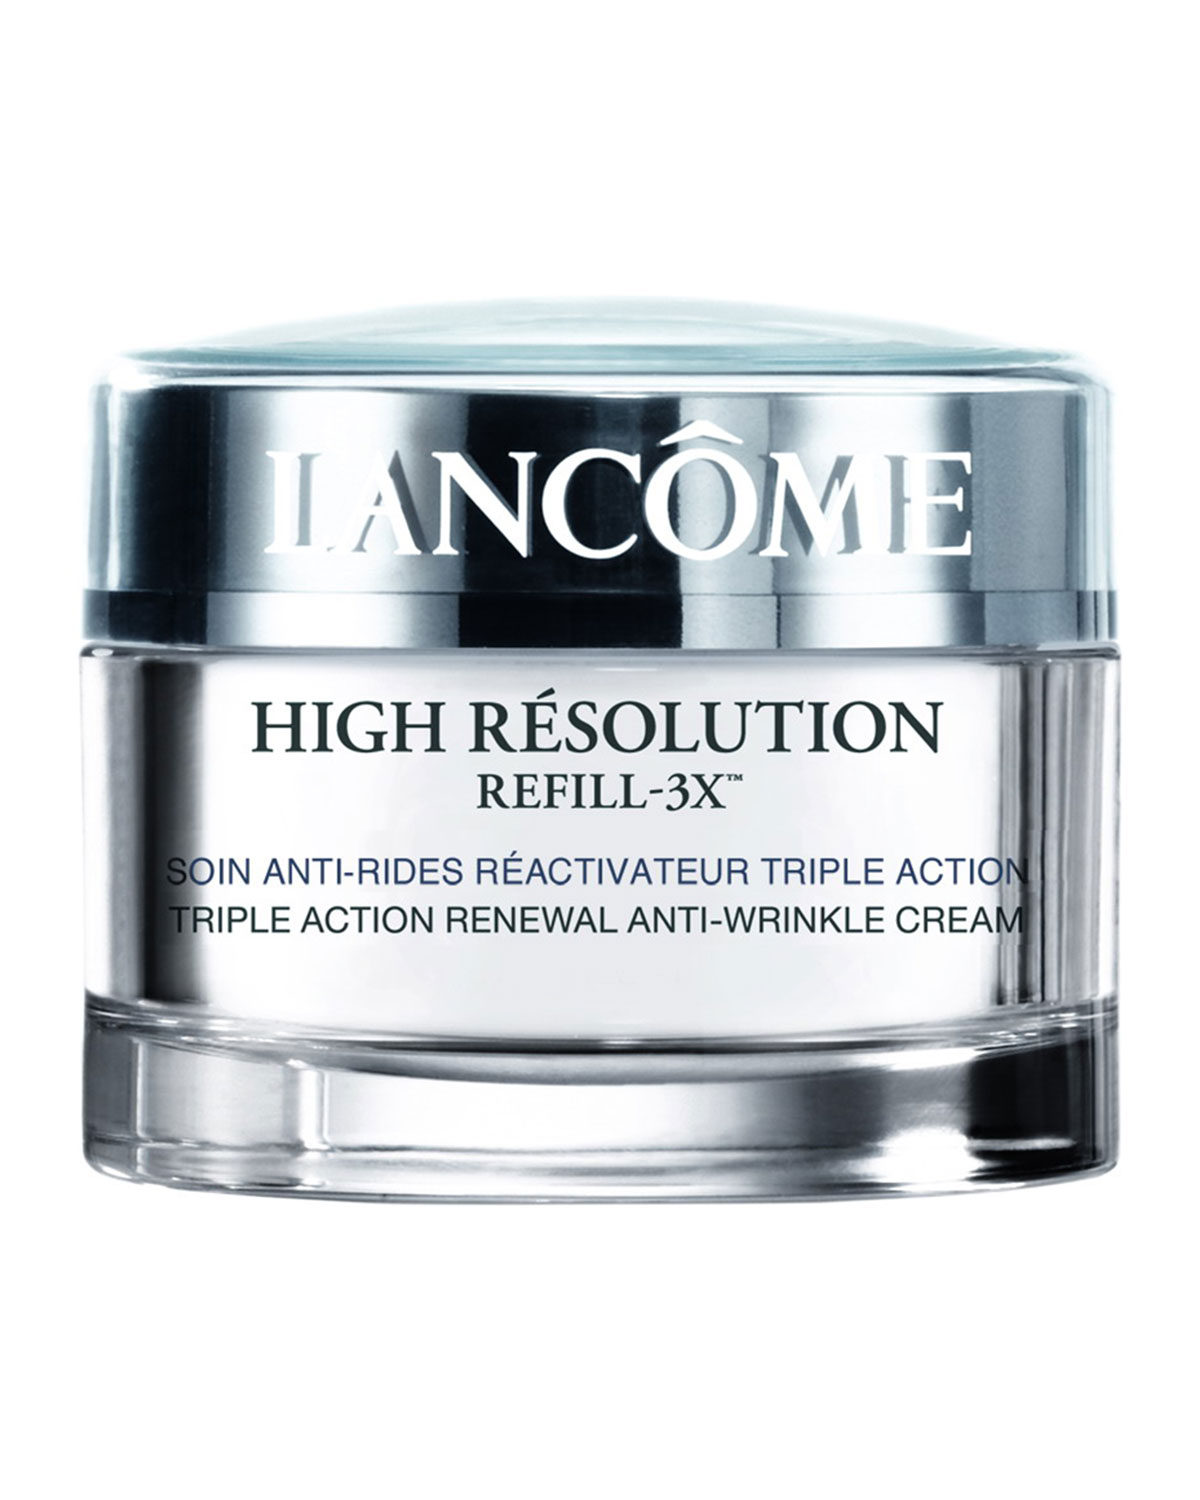 Lancome High Resolution Refill 3X Triple Action Renewal Anti-Wrinkle Cream, 1.7 oz